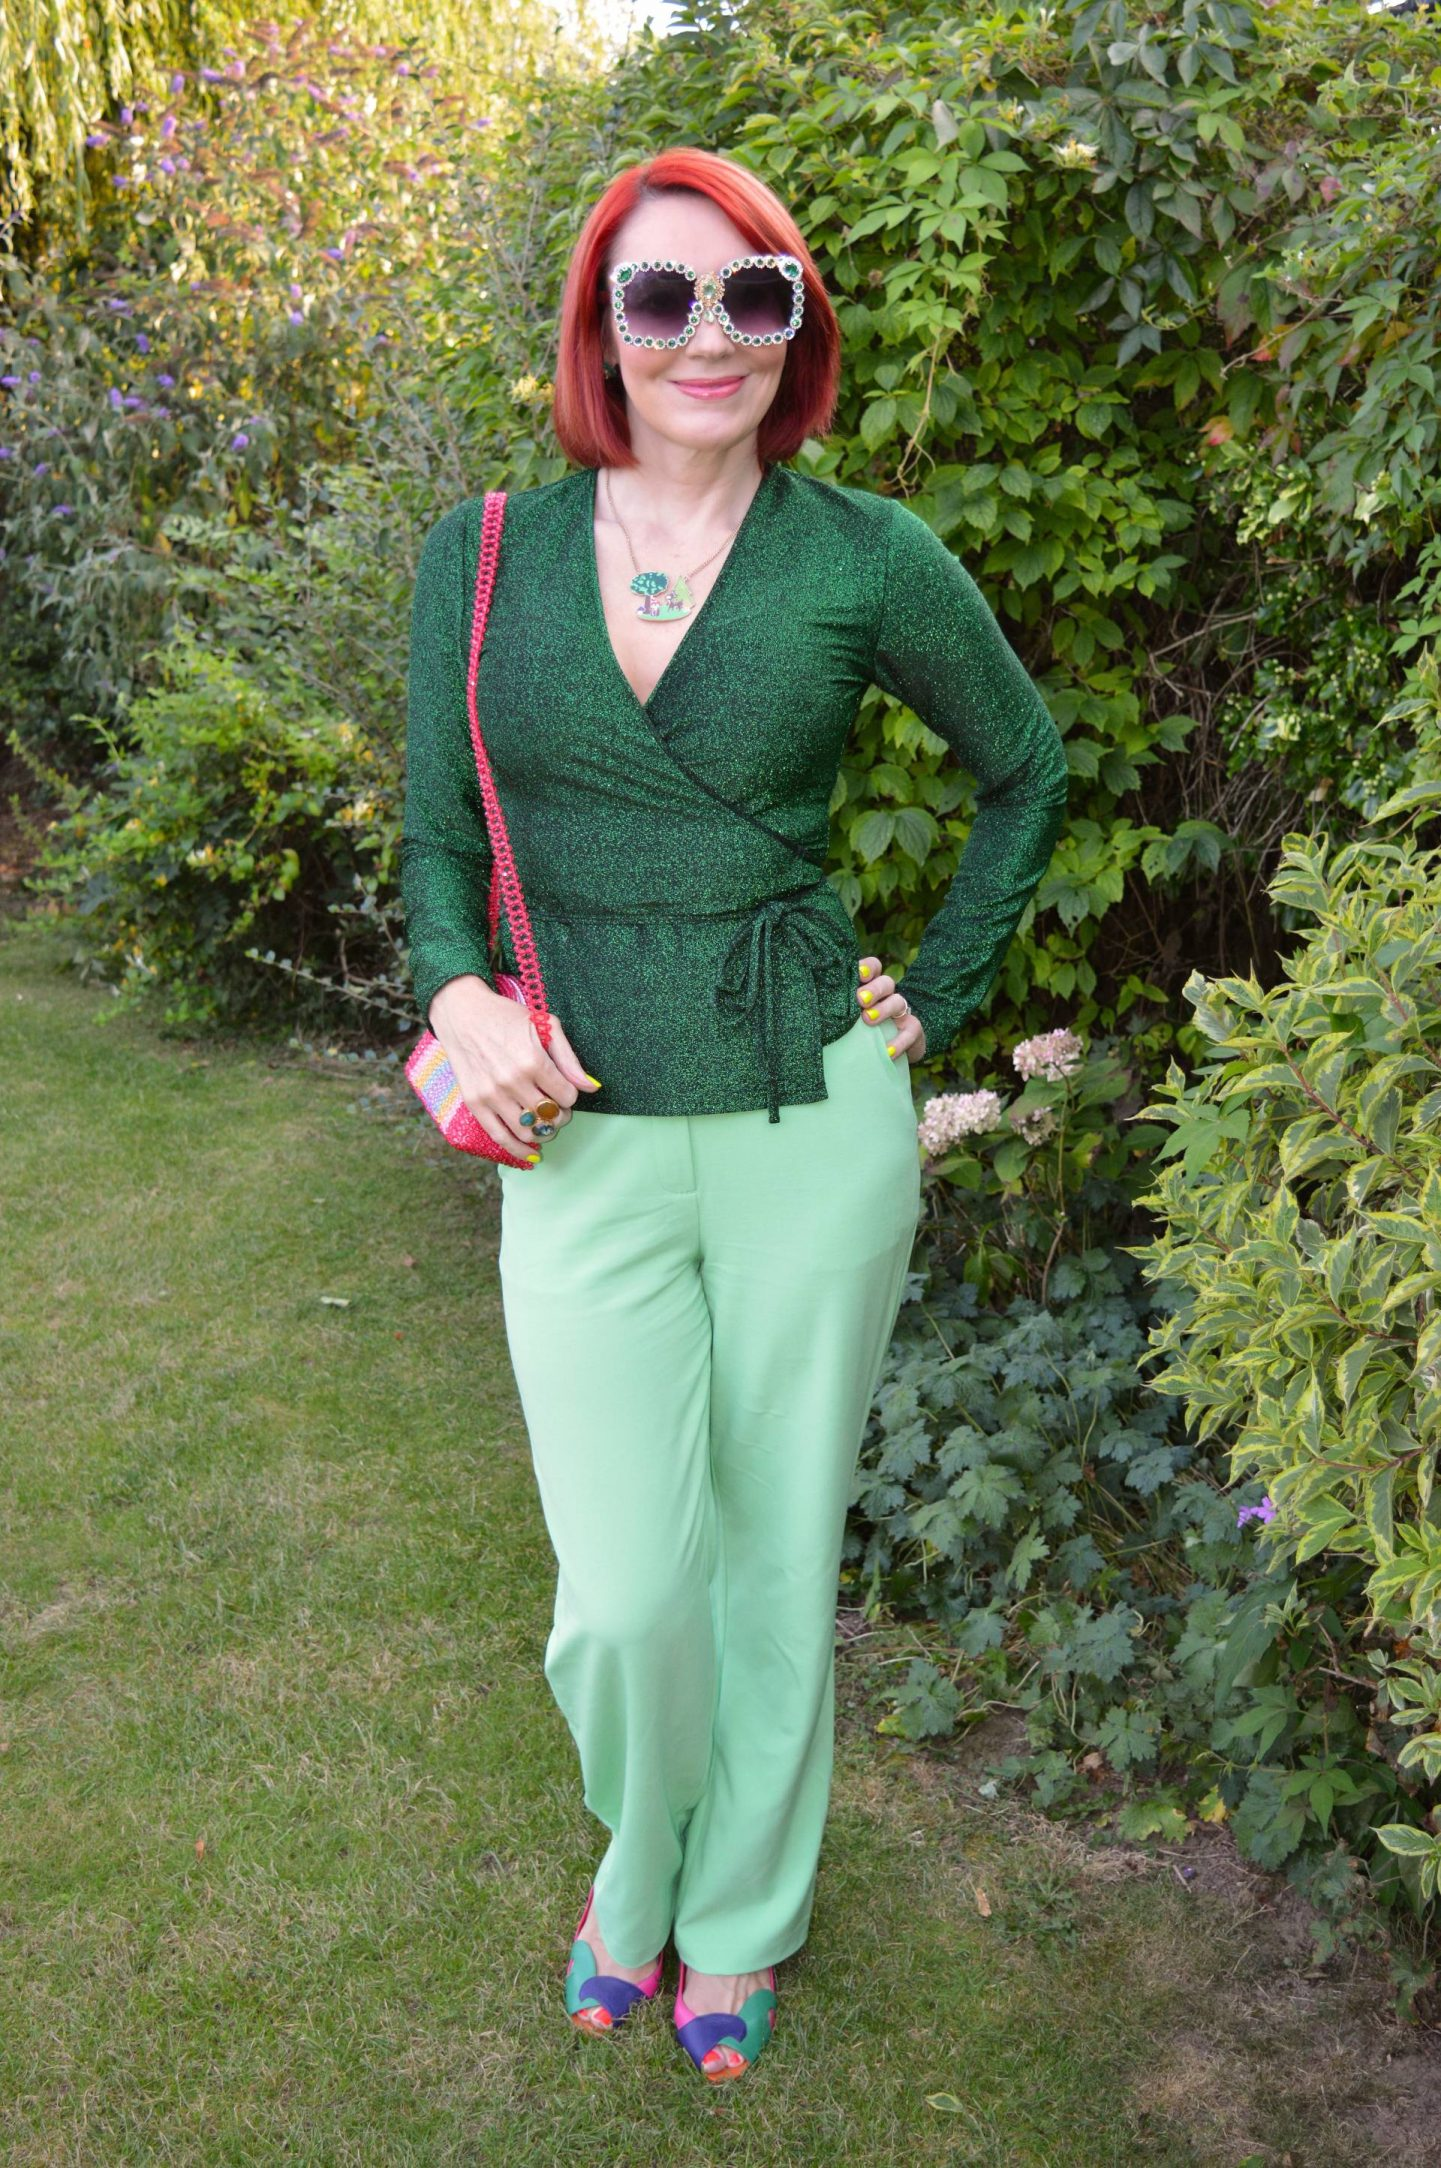 Green Sparkles and Bling + Style With a Smile Link Up, Kitri green lurex wrap top, Asos lime green trousers, Skinny Dip beaded rainbow bag. Hollywood Vintage sunglasses